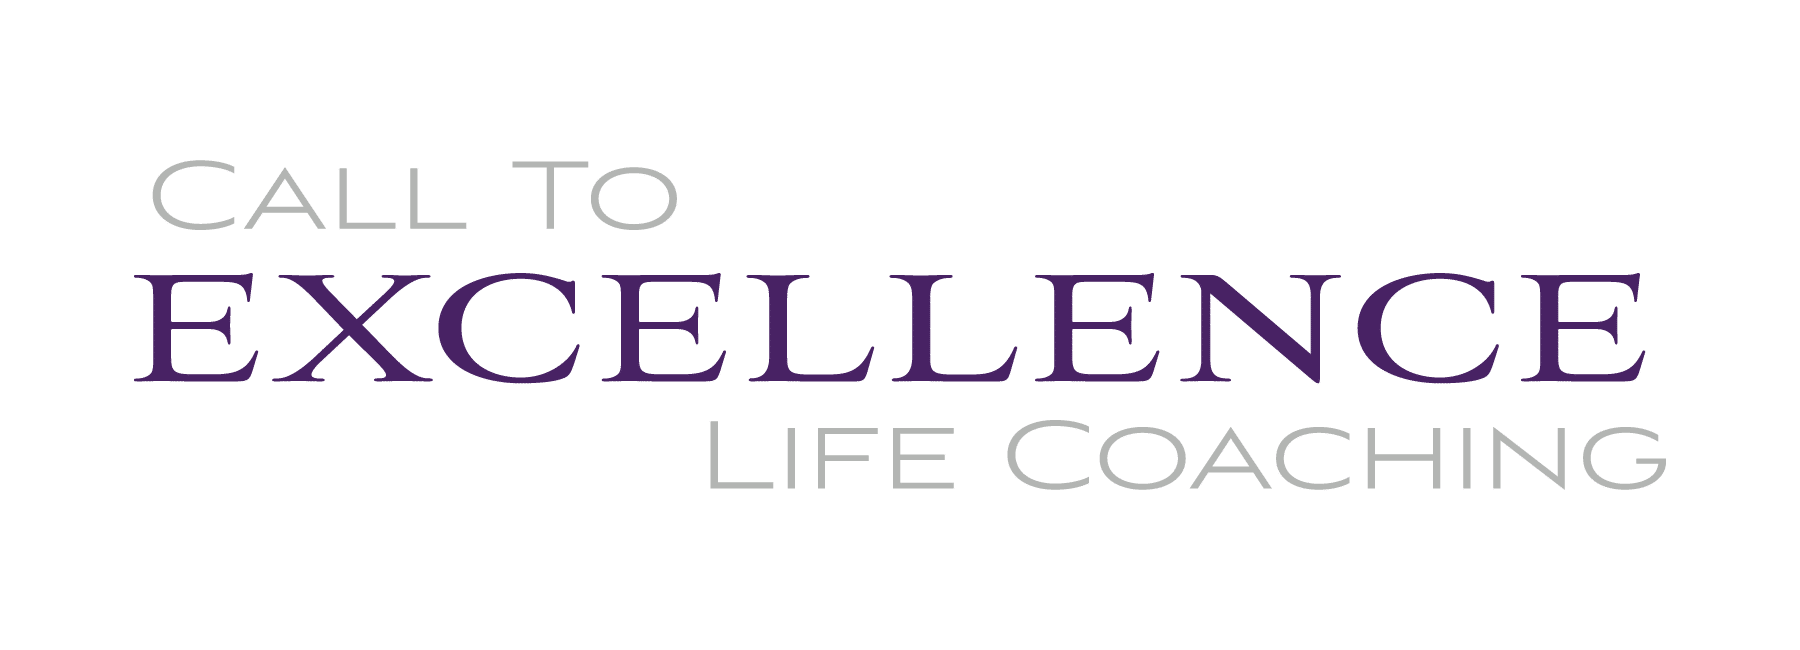 Call to Excellence Life Coaching logo